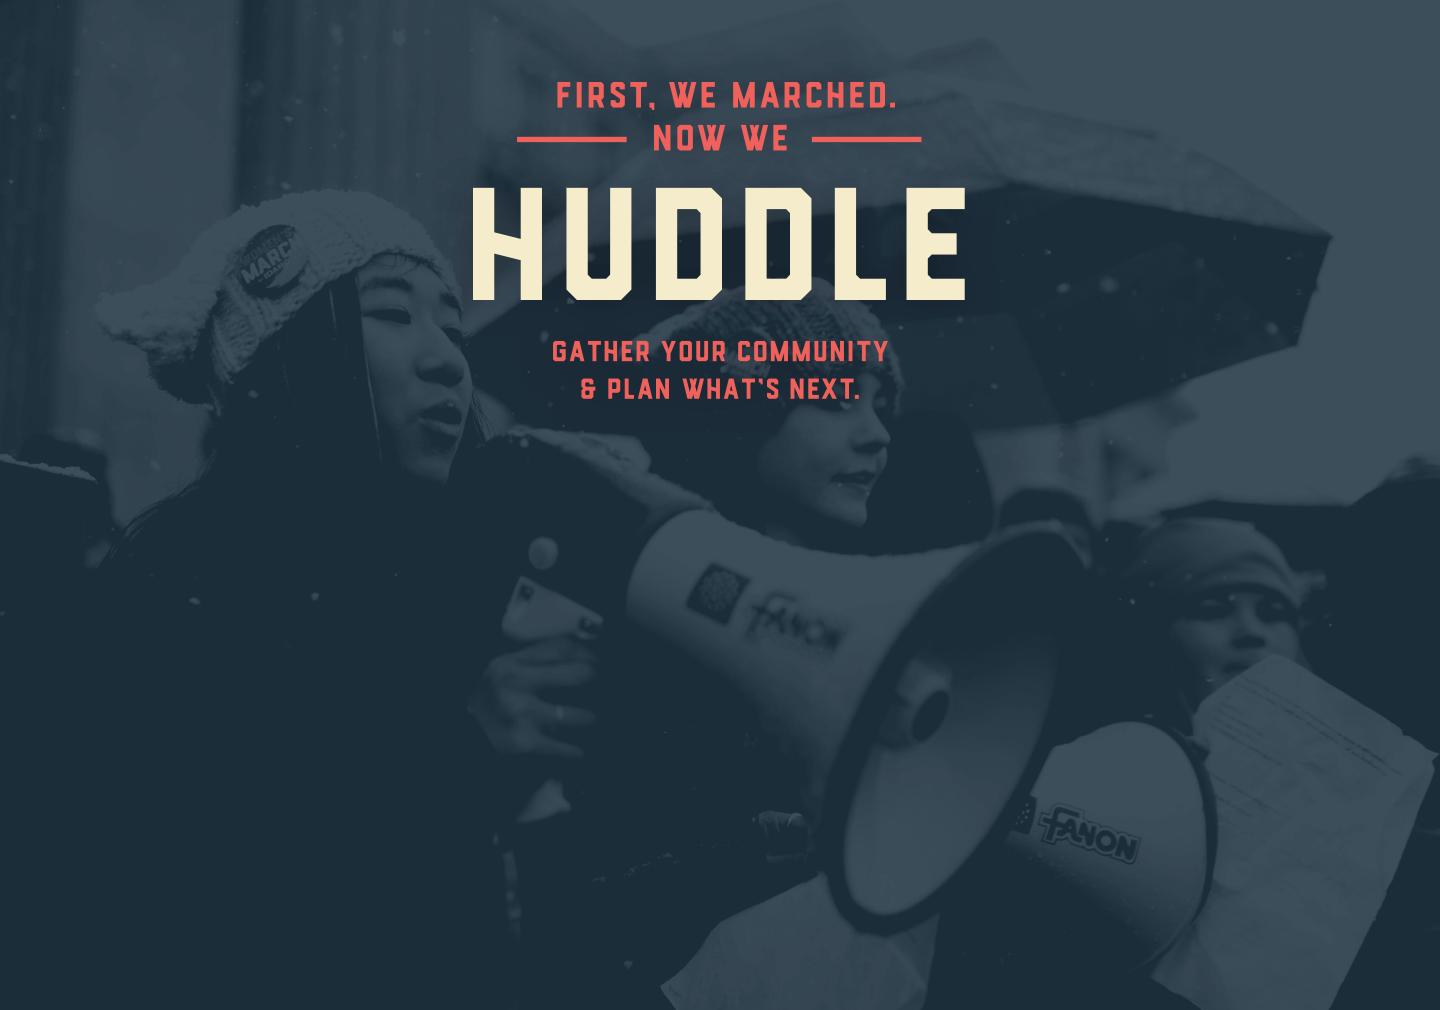 Action 2 huddle womens march we will gather together in our neighborhoods all over the world to define our next steps and envision how to transform the energy we saw at womens marches gumiabroncs Choice Image